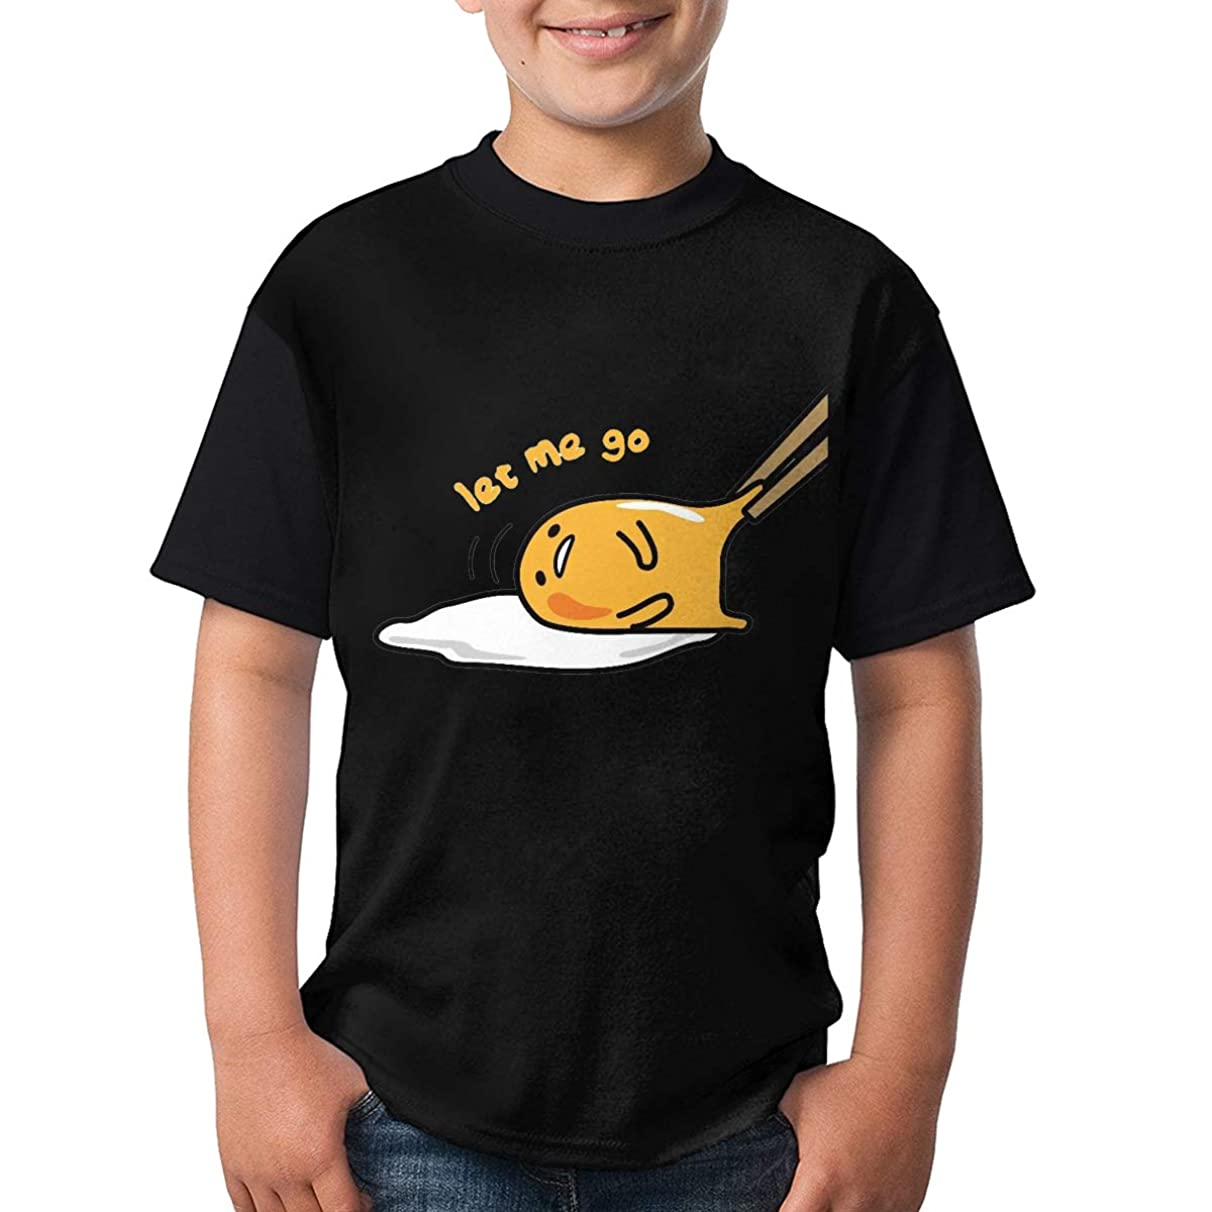 Youth Round Neck T-Shirts, Japan Gudetama Lazy Egg Short Sleeve T-Shirt Sport Casual Classic Jersey for Teens